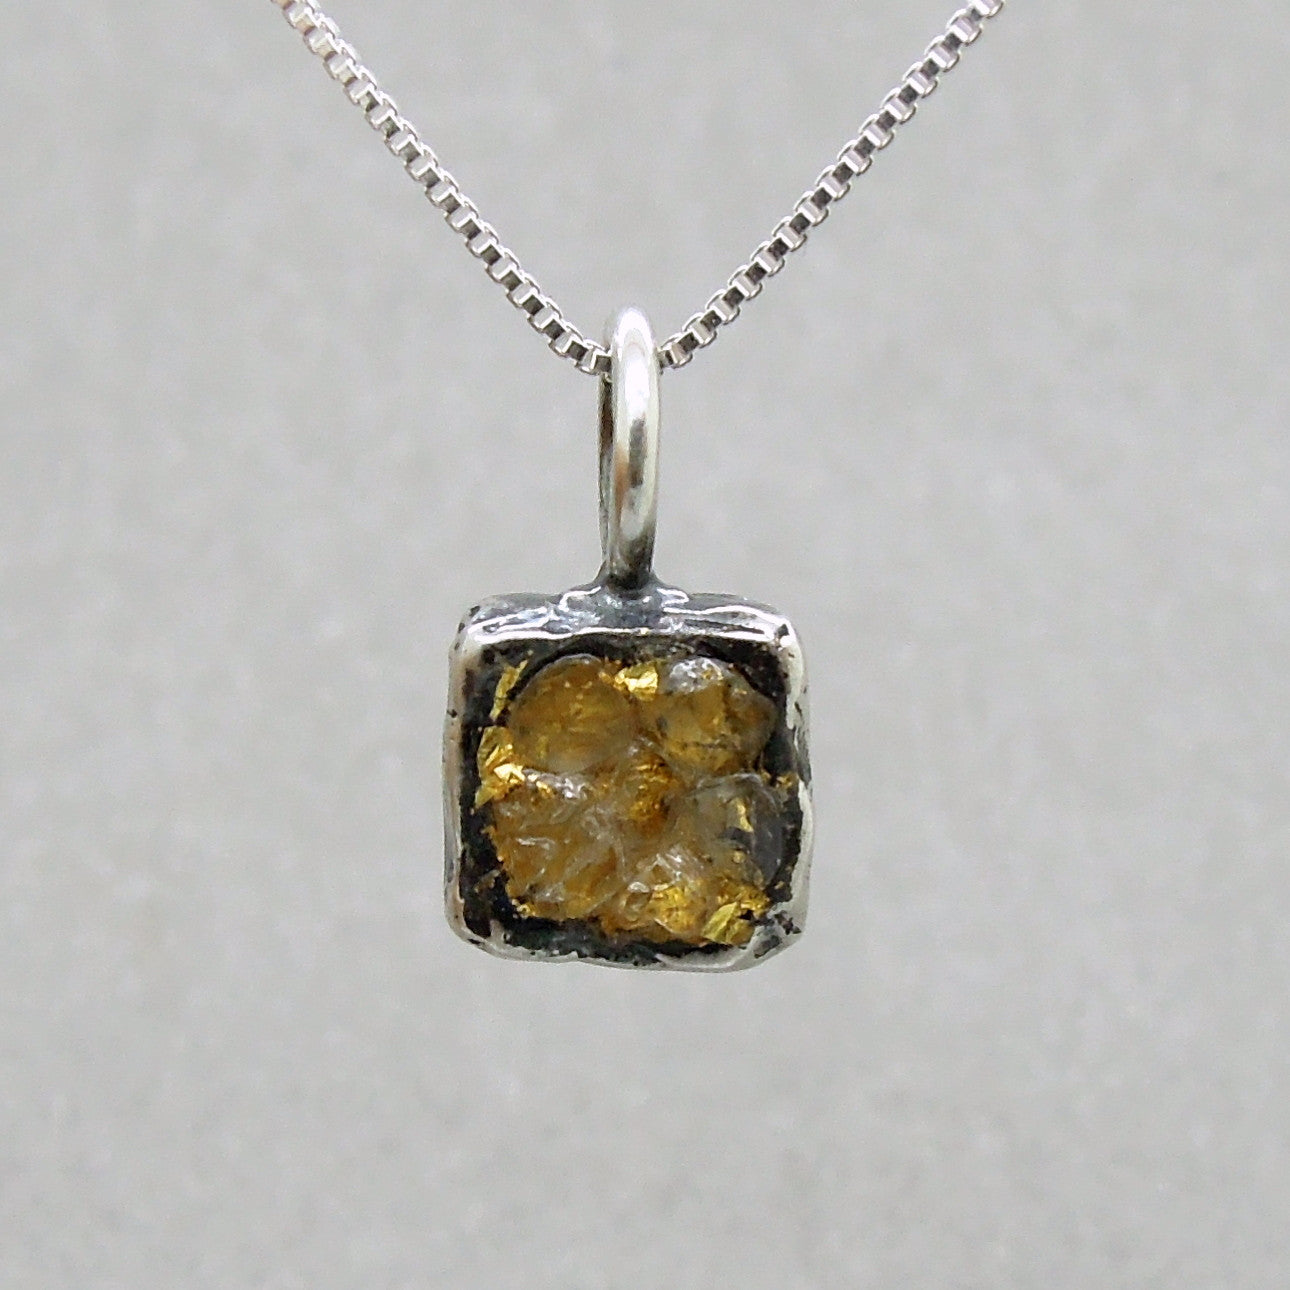 Raw diamond necklace pendant square pendant 24k yellow gold in raw diamond necklace pendant square pendant 24k yellow gold in oxidized silver silver chain included aloadofball Images